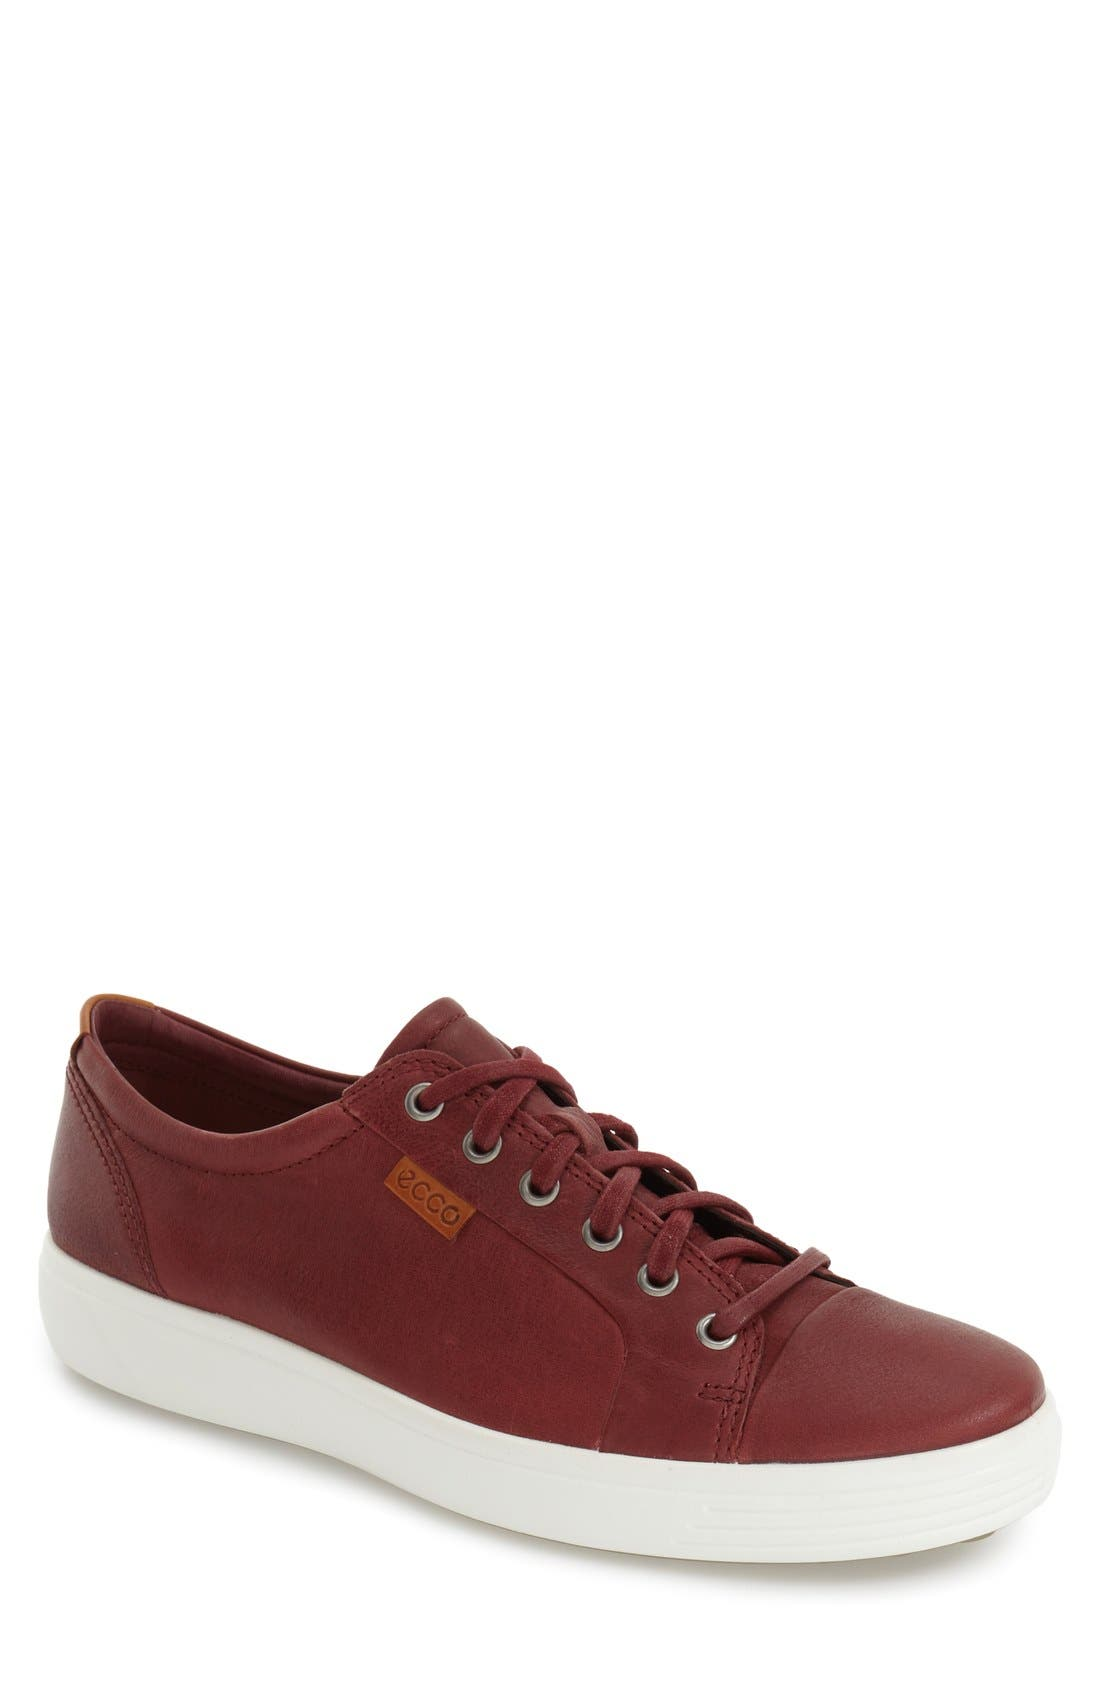 Soft VII Lace-Up Sneaker,                             Main thumbnail 19, color,